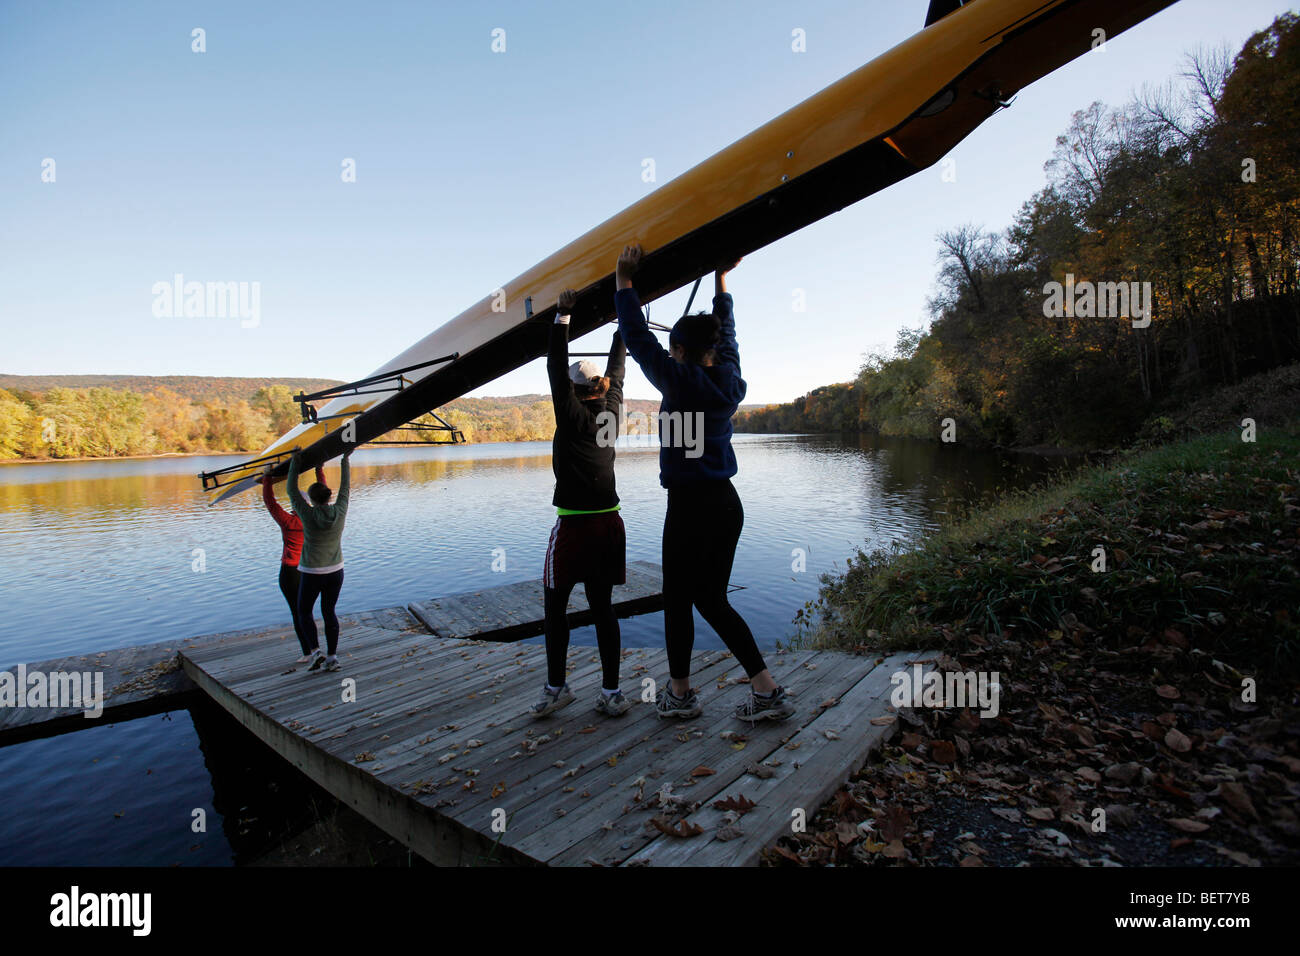 American private high school girls rowing team on the Connecticut River, Gill, Massachusetts - Stock Image